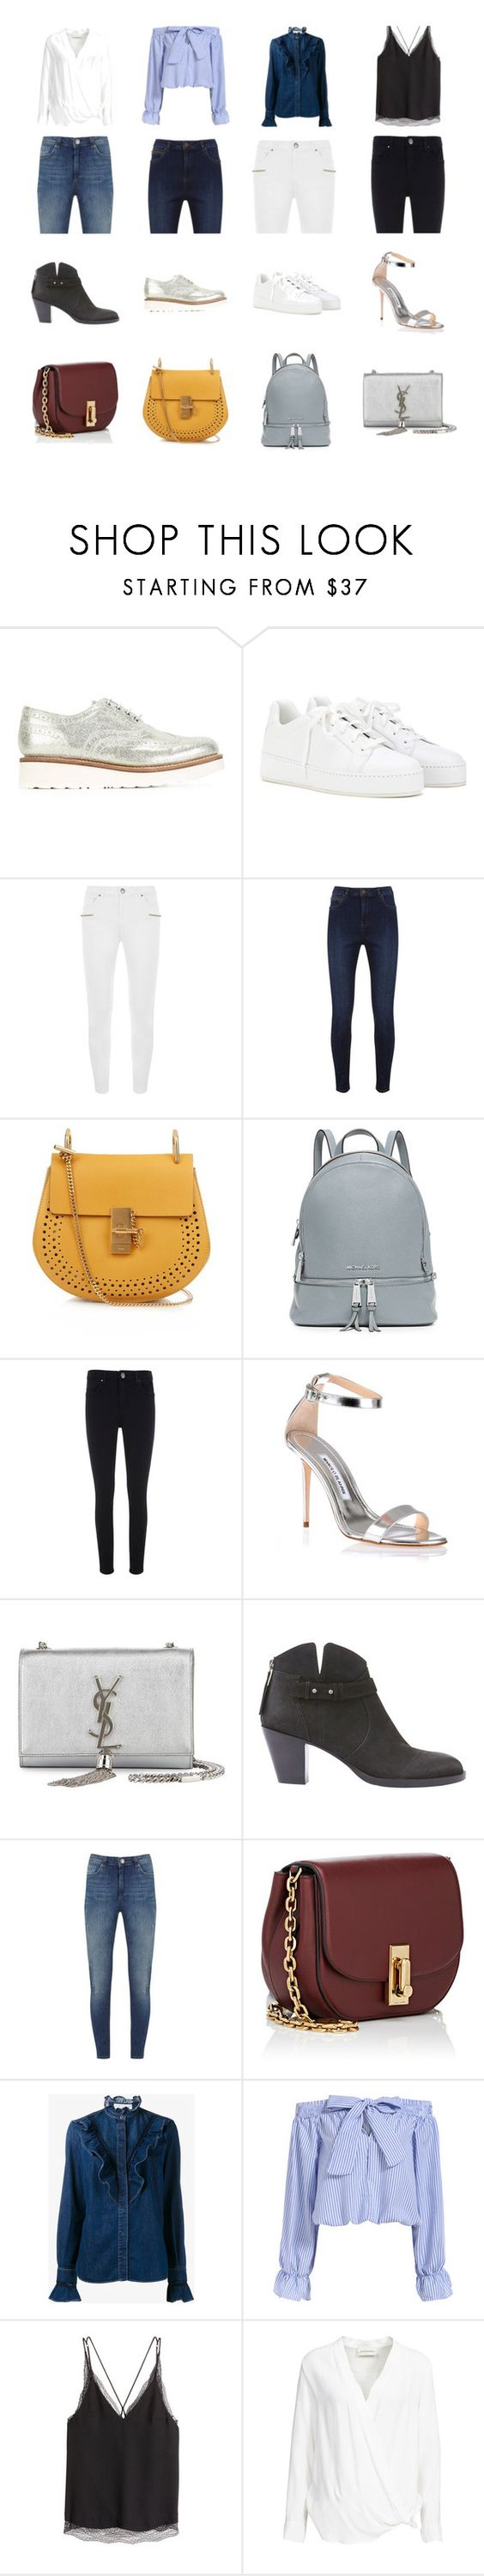 """Four out of Four"" by edellemellett on Polyvore featuring Grenson, Loro Piana, Mint Velvet, Chloé, MICHAEL Michael Kors, Manolo Blahnik, Yves Saint Laurent, Marc Jacobs, STELLA McCARTNEY and By Malene Birger"